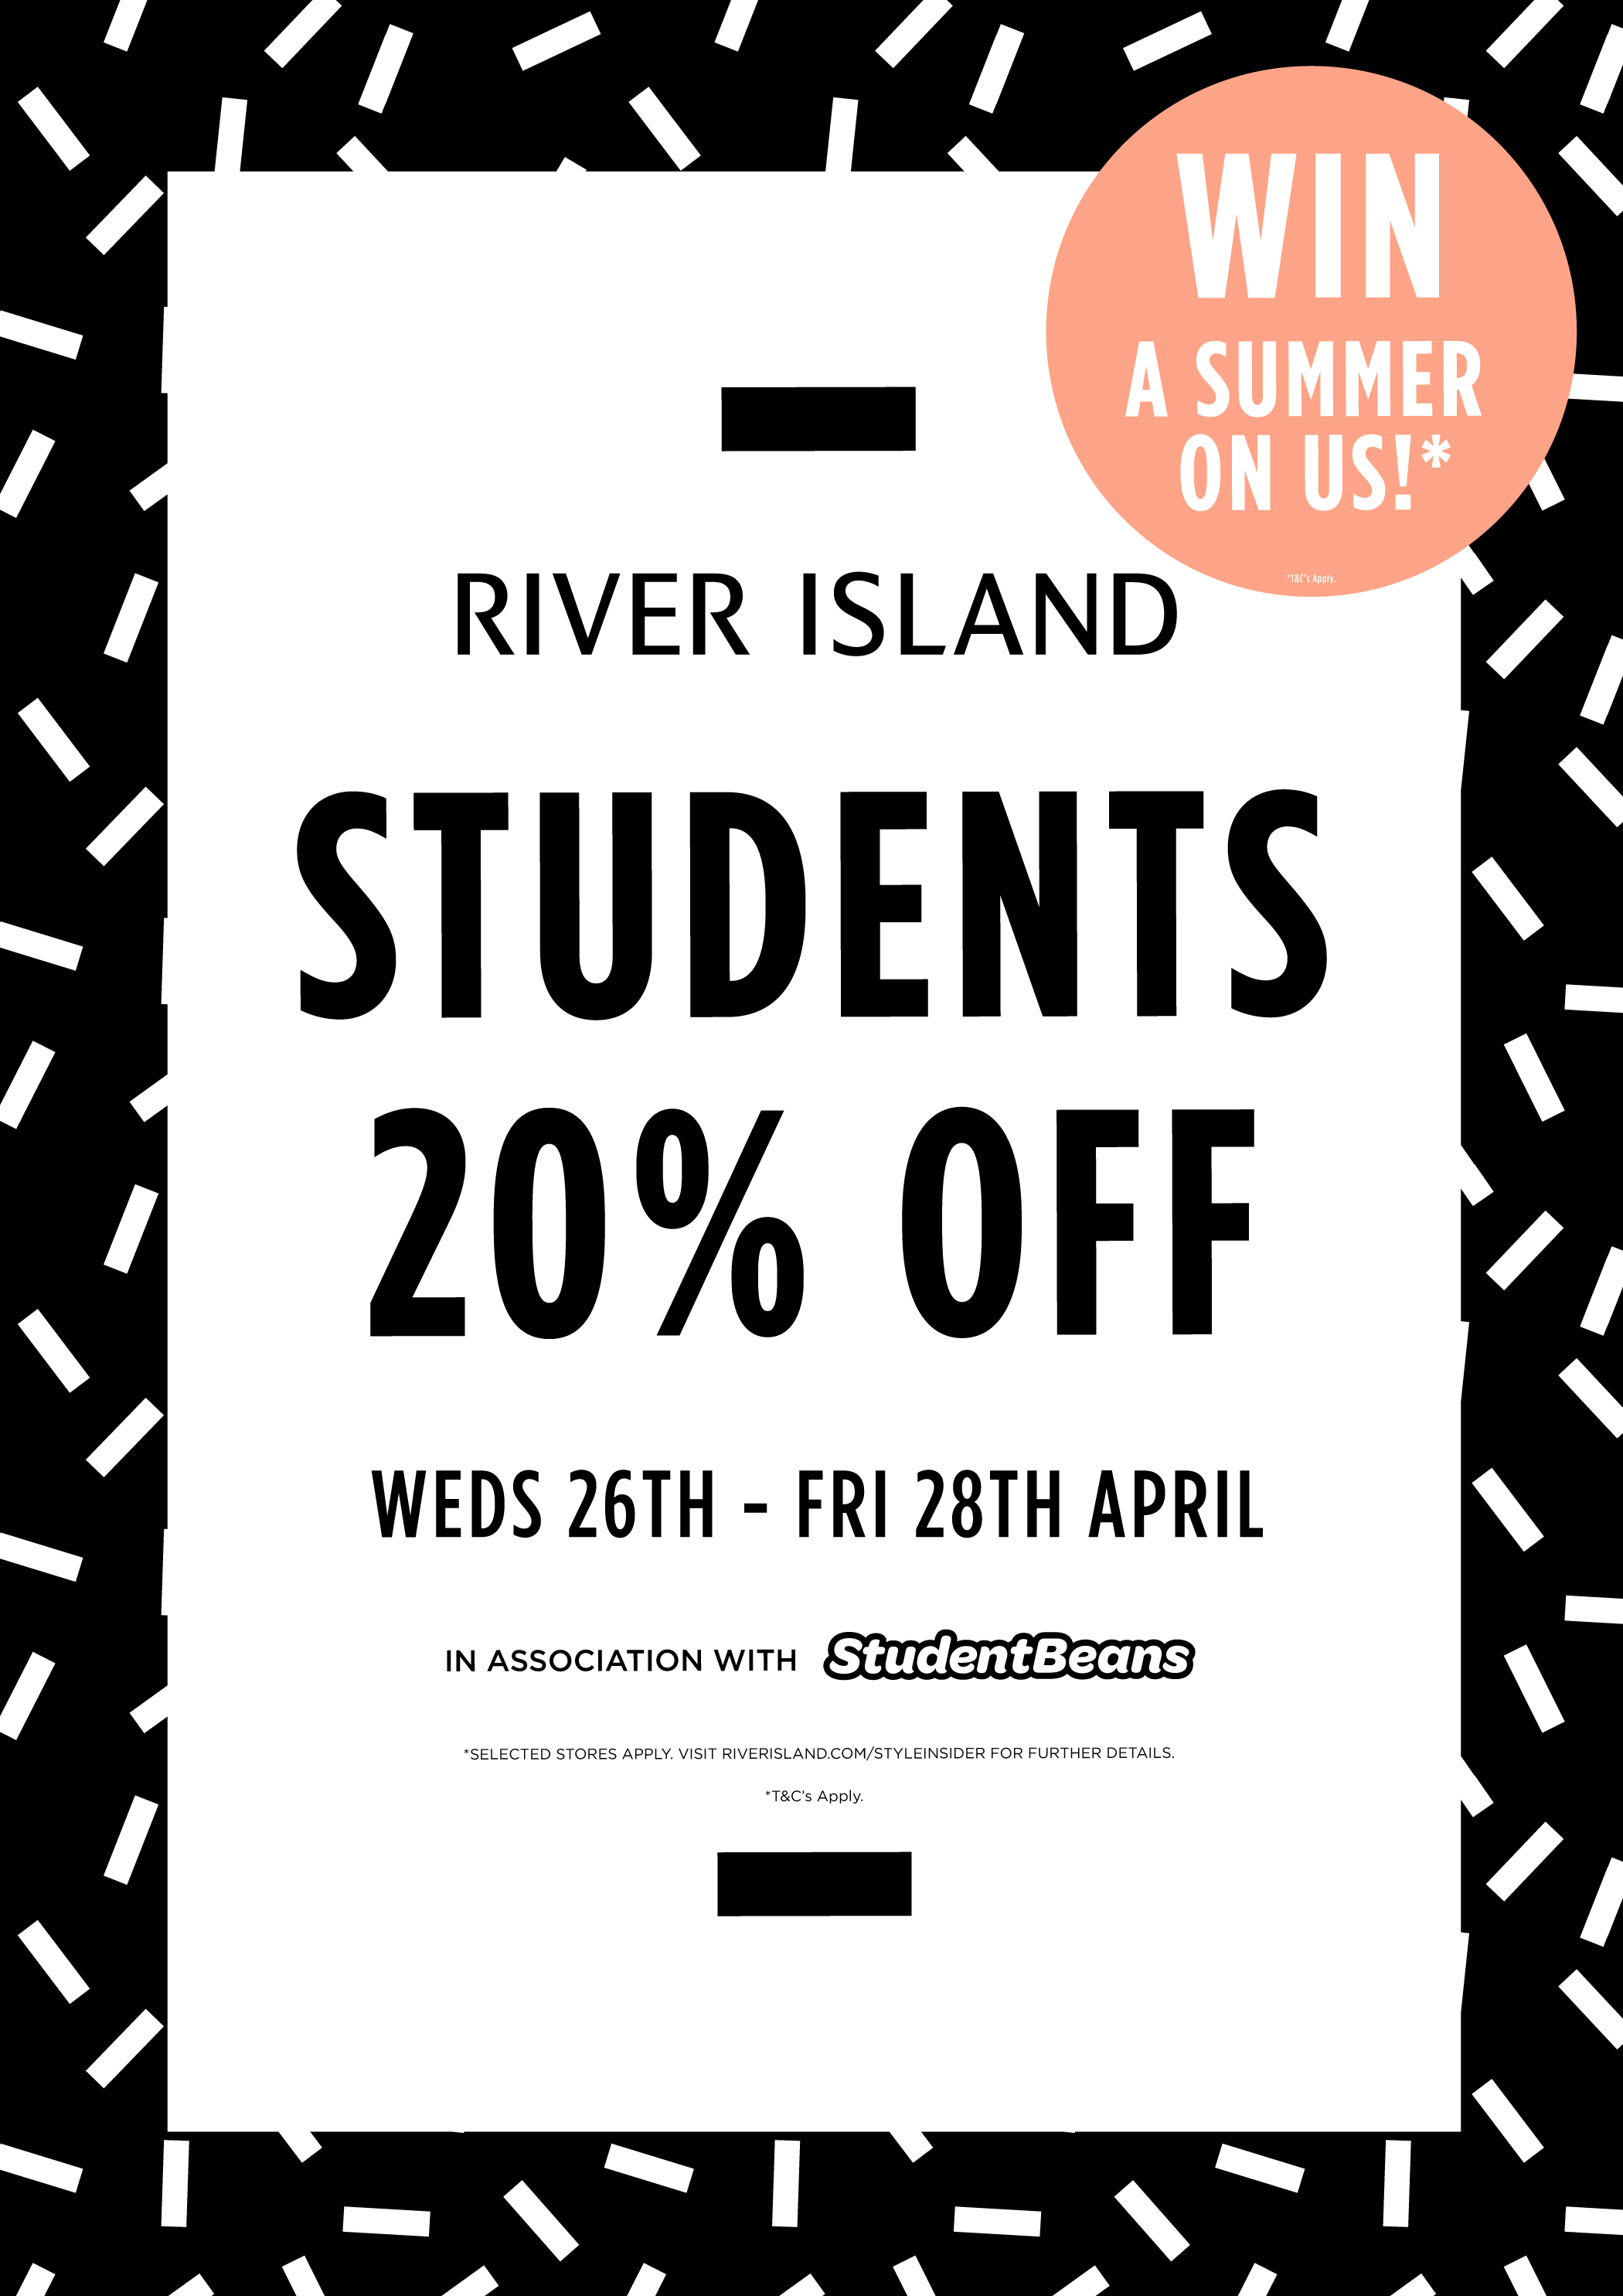 River Island Coupon Code 2018 Poolsupplyworld Coupon